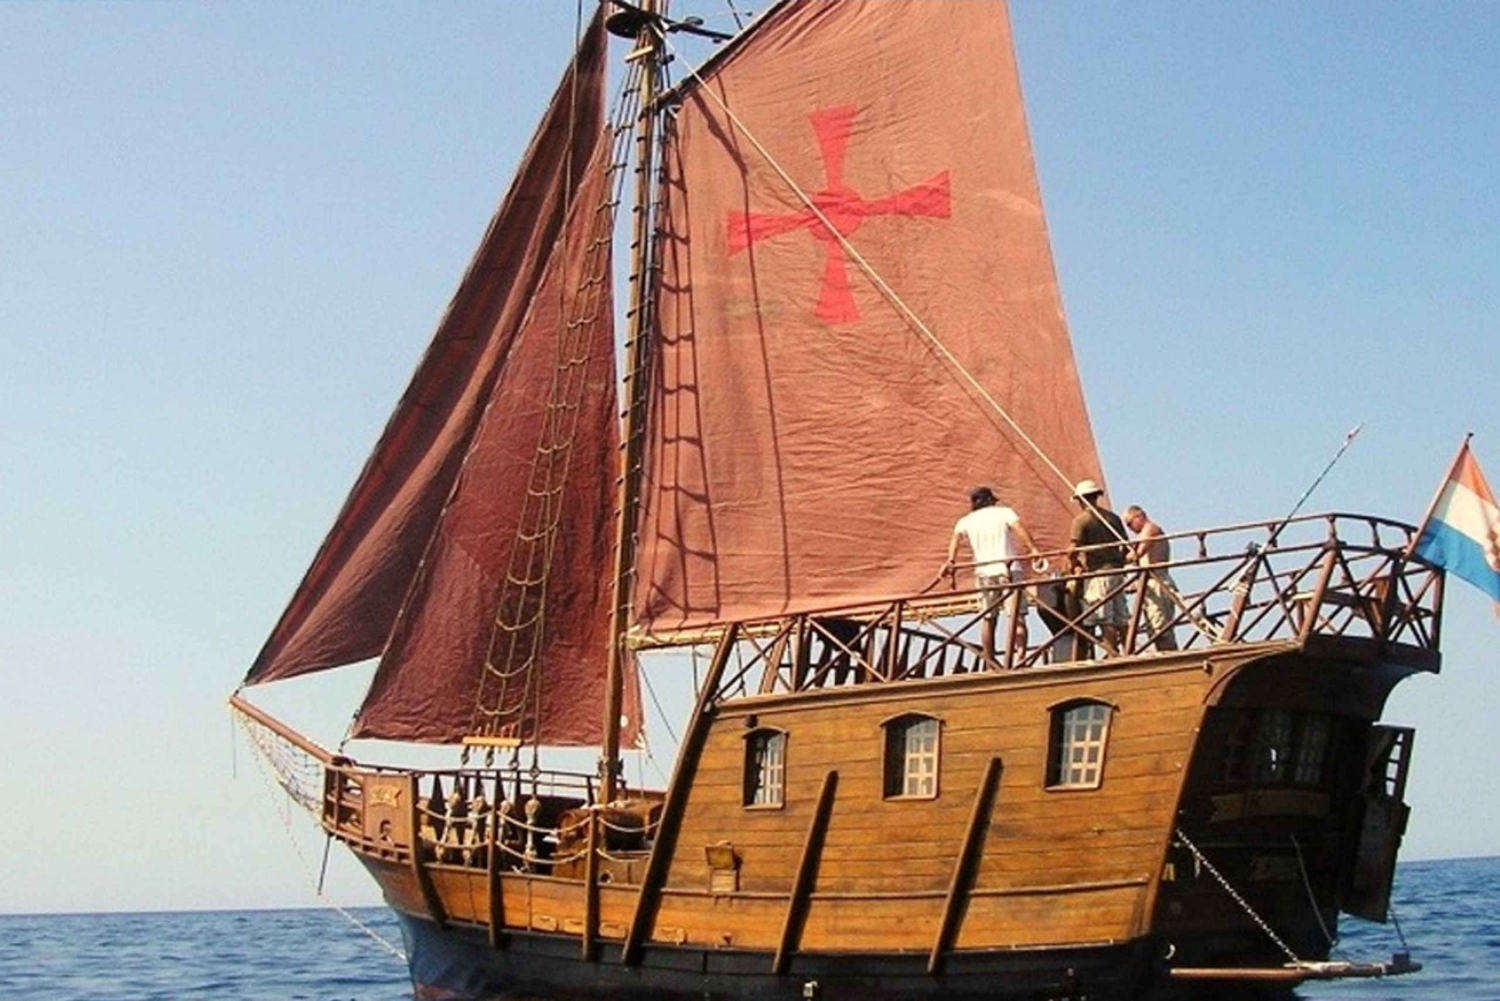 Split: Half-Day Pirate Cruise with Lunch & Drinks